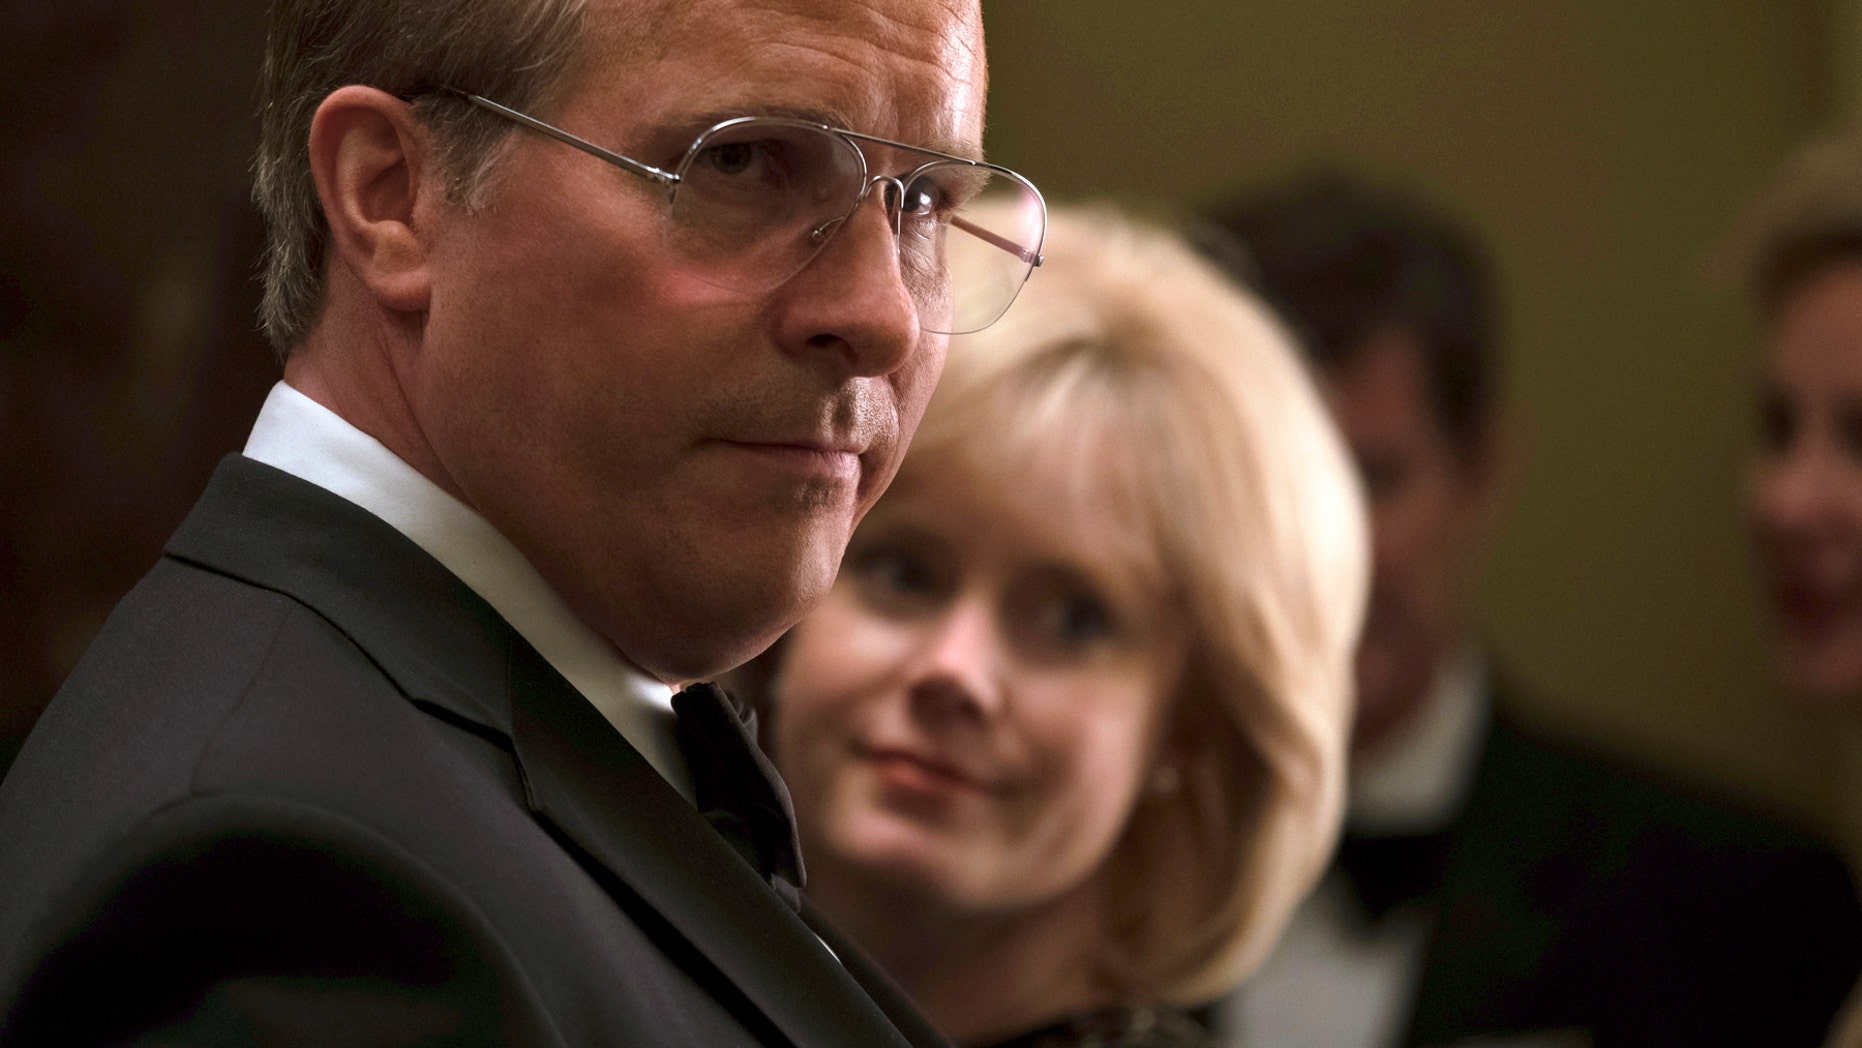 Actor Christian balediscussed what it was like to get inside the mind of Dick Cheney for 'Vice.'